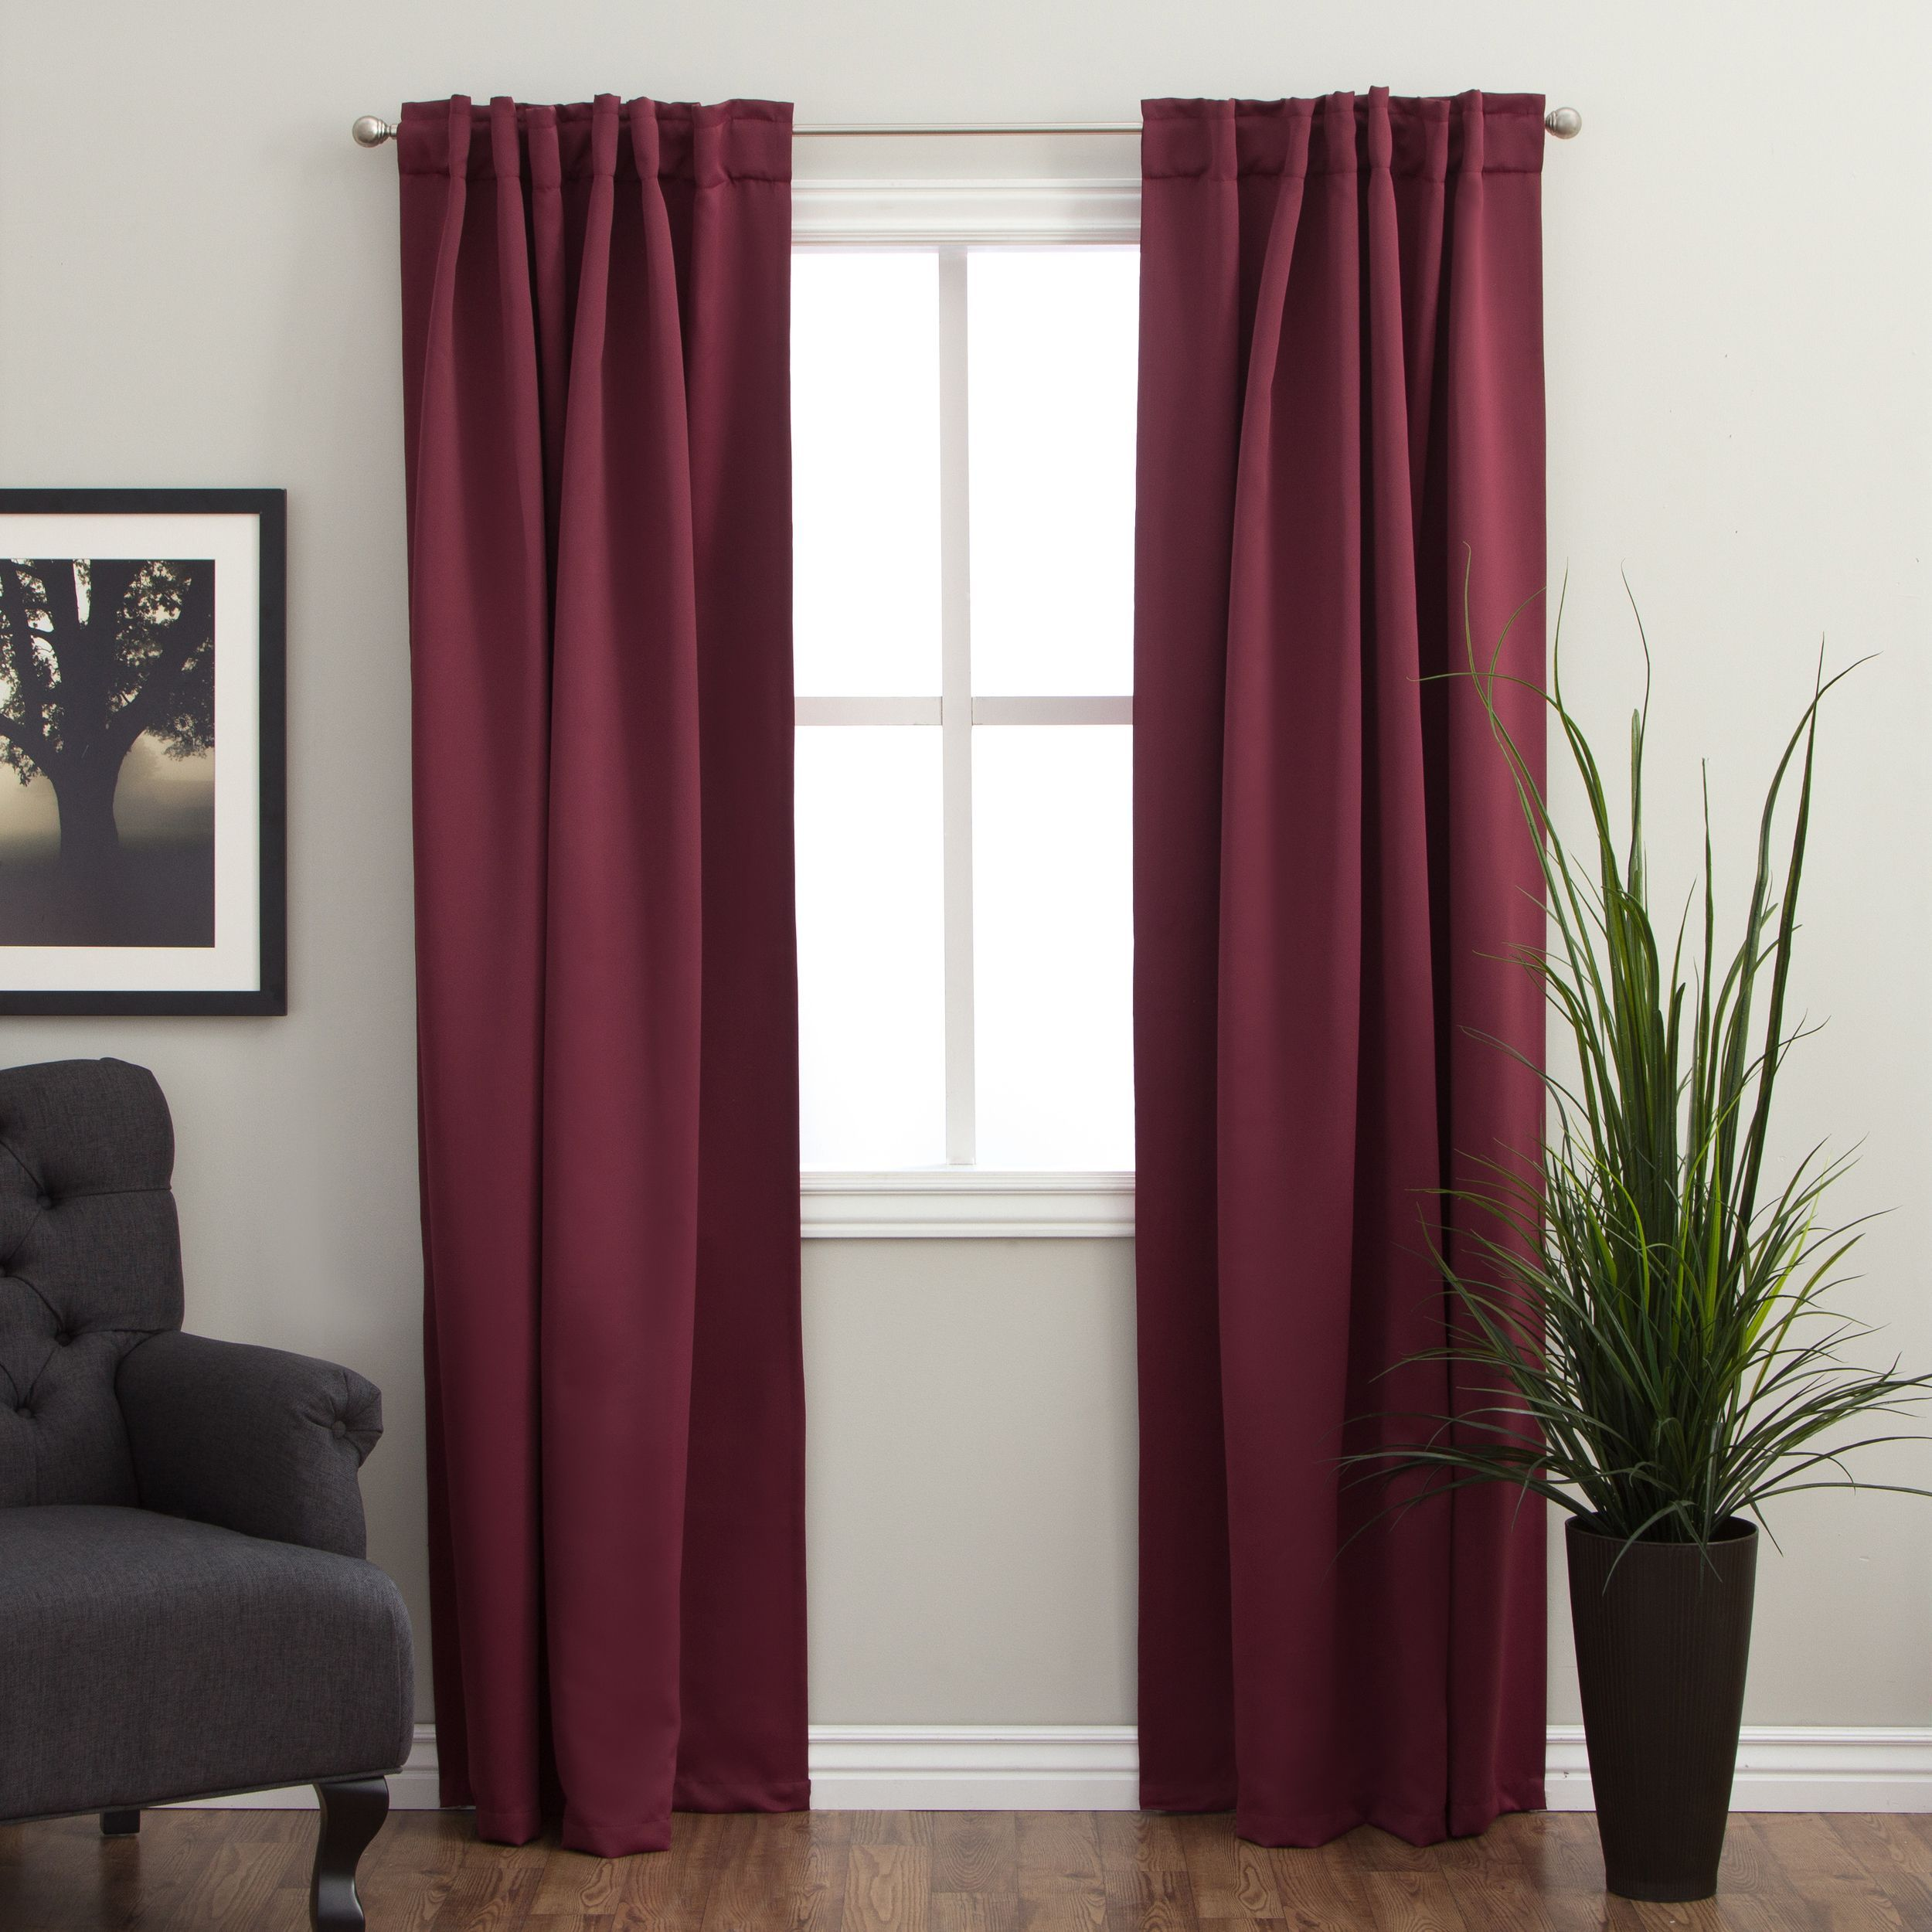 Arlo Blinds 84 Inch Insulated Back Tab Blackout Curtain